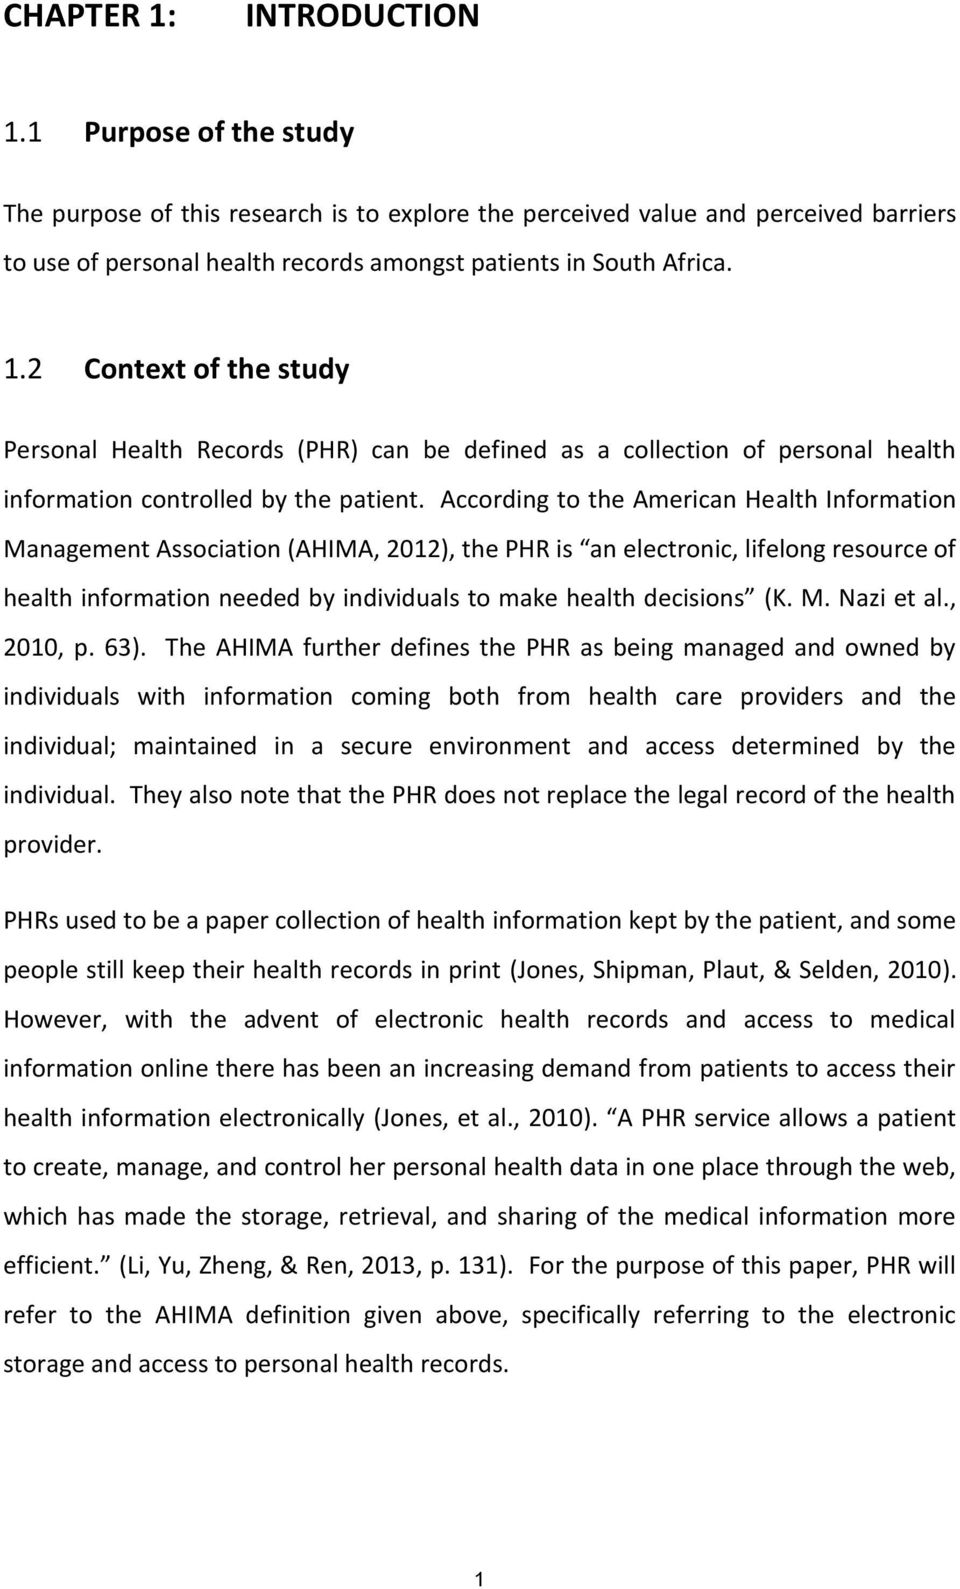 2 Context of the study Personal Health Records (PHR) can be defined as a collection of personal health information controlled by the patient.